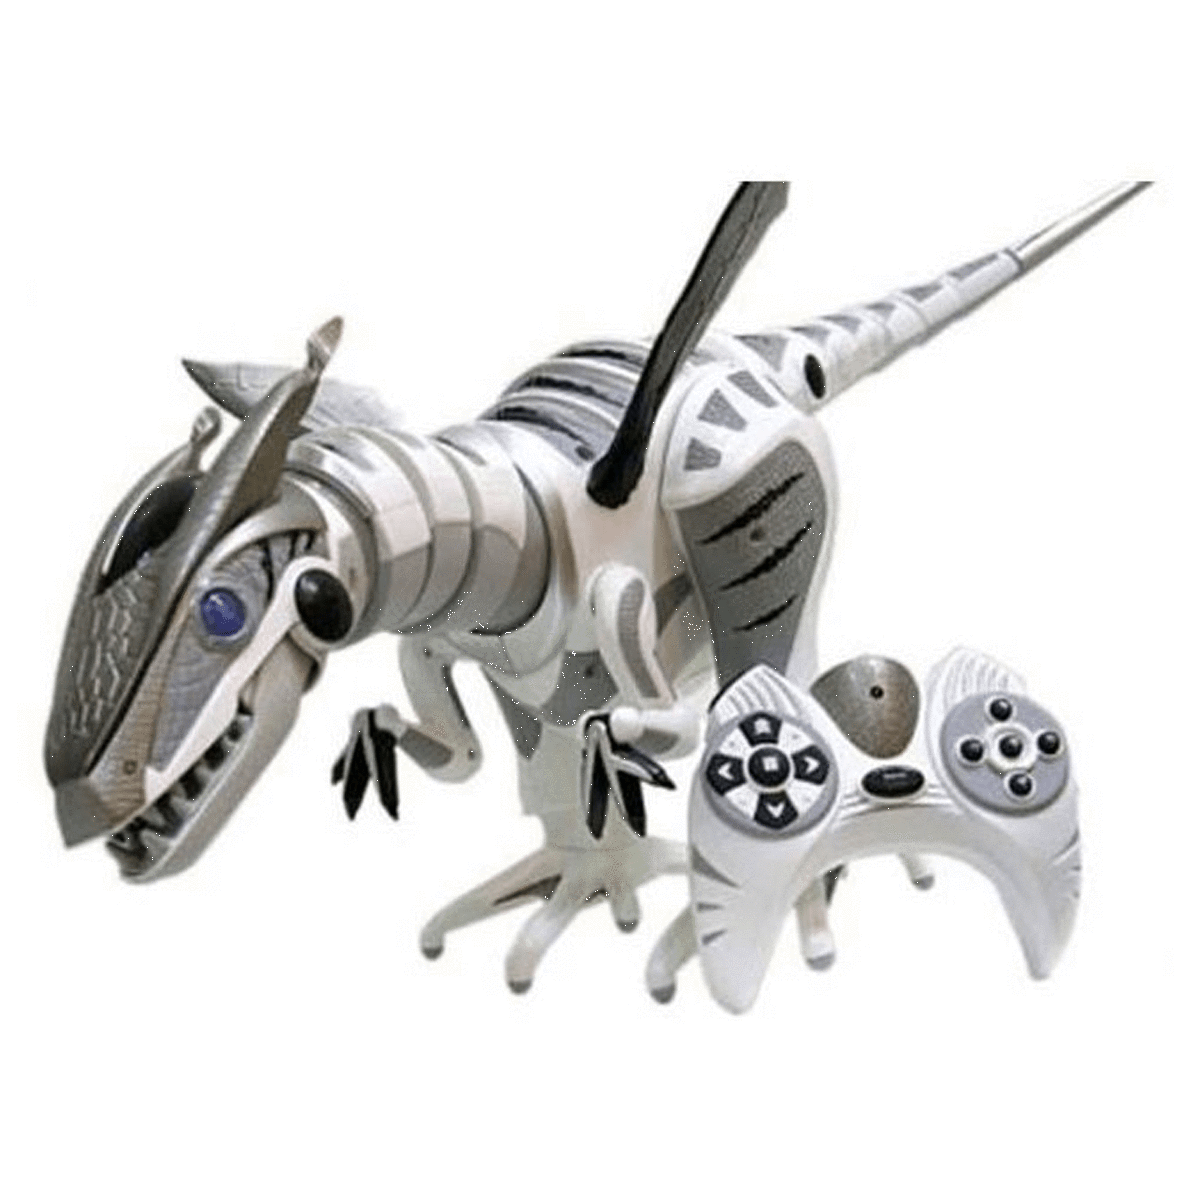 General 4 Channel RC Robotic Dinosaur